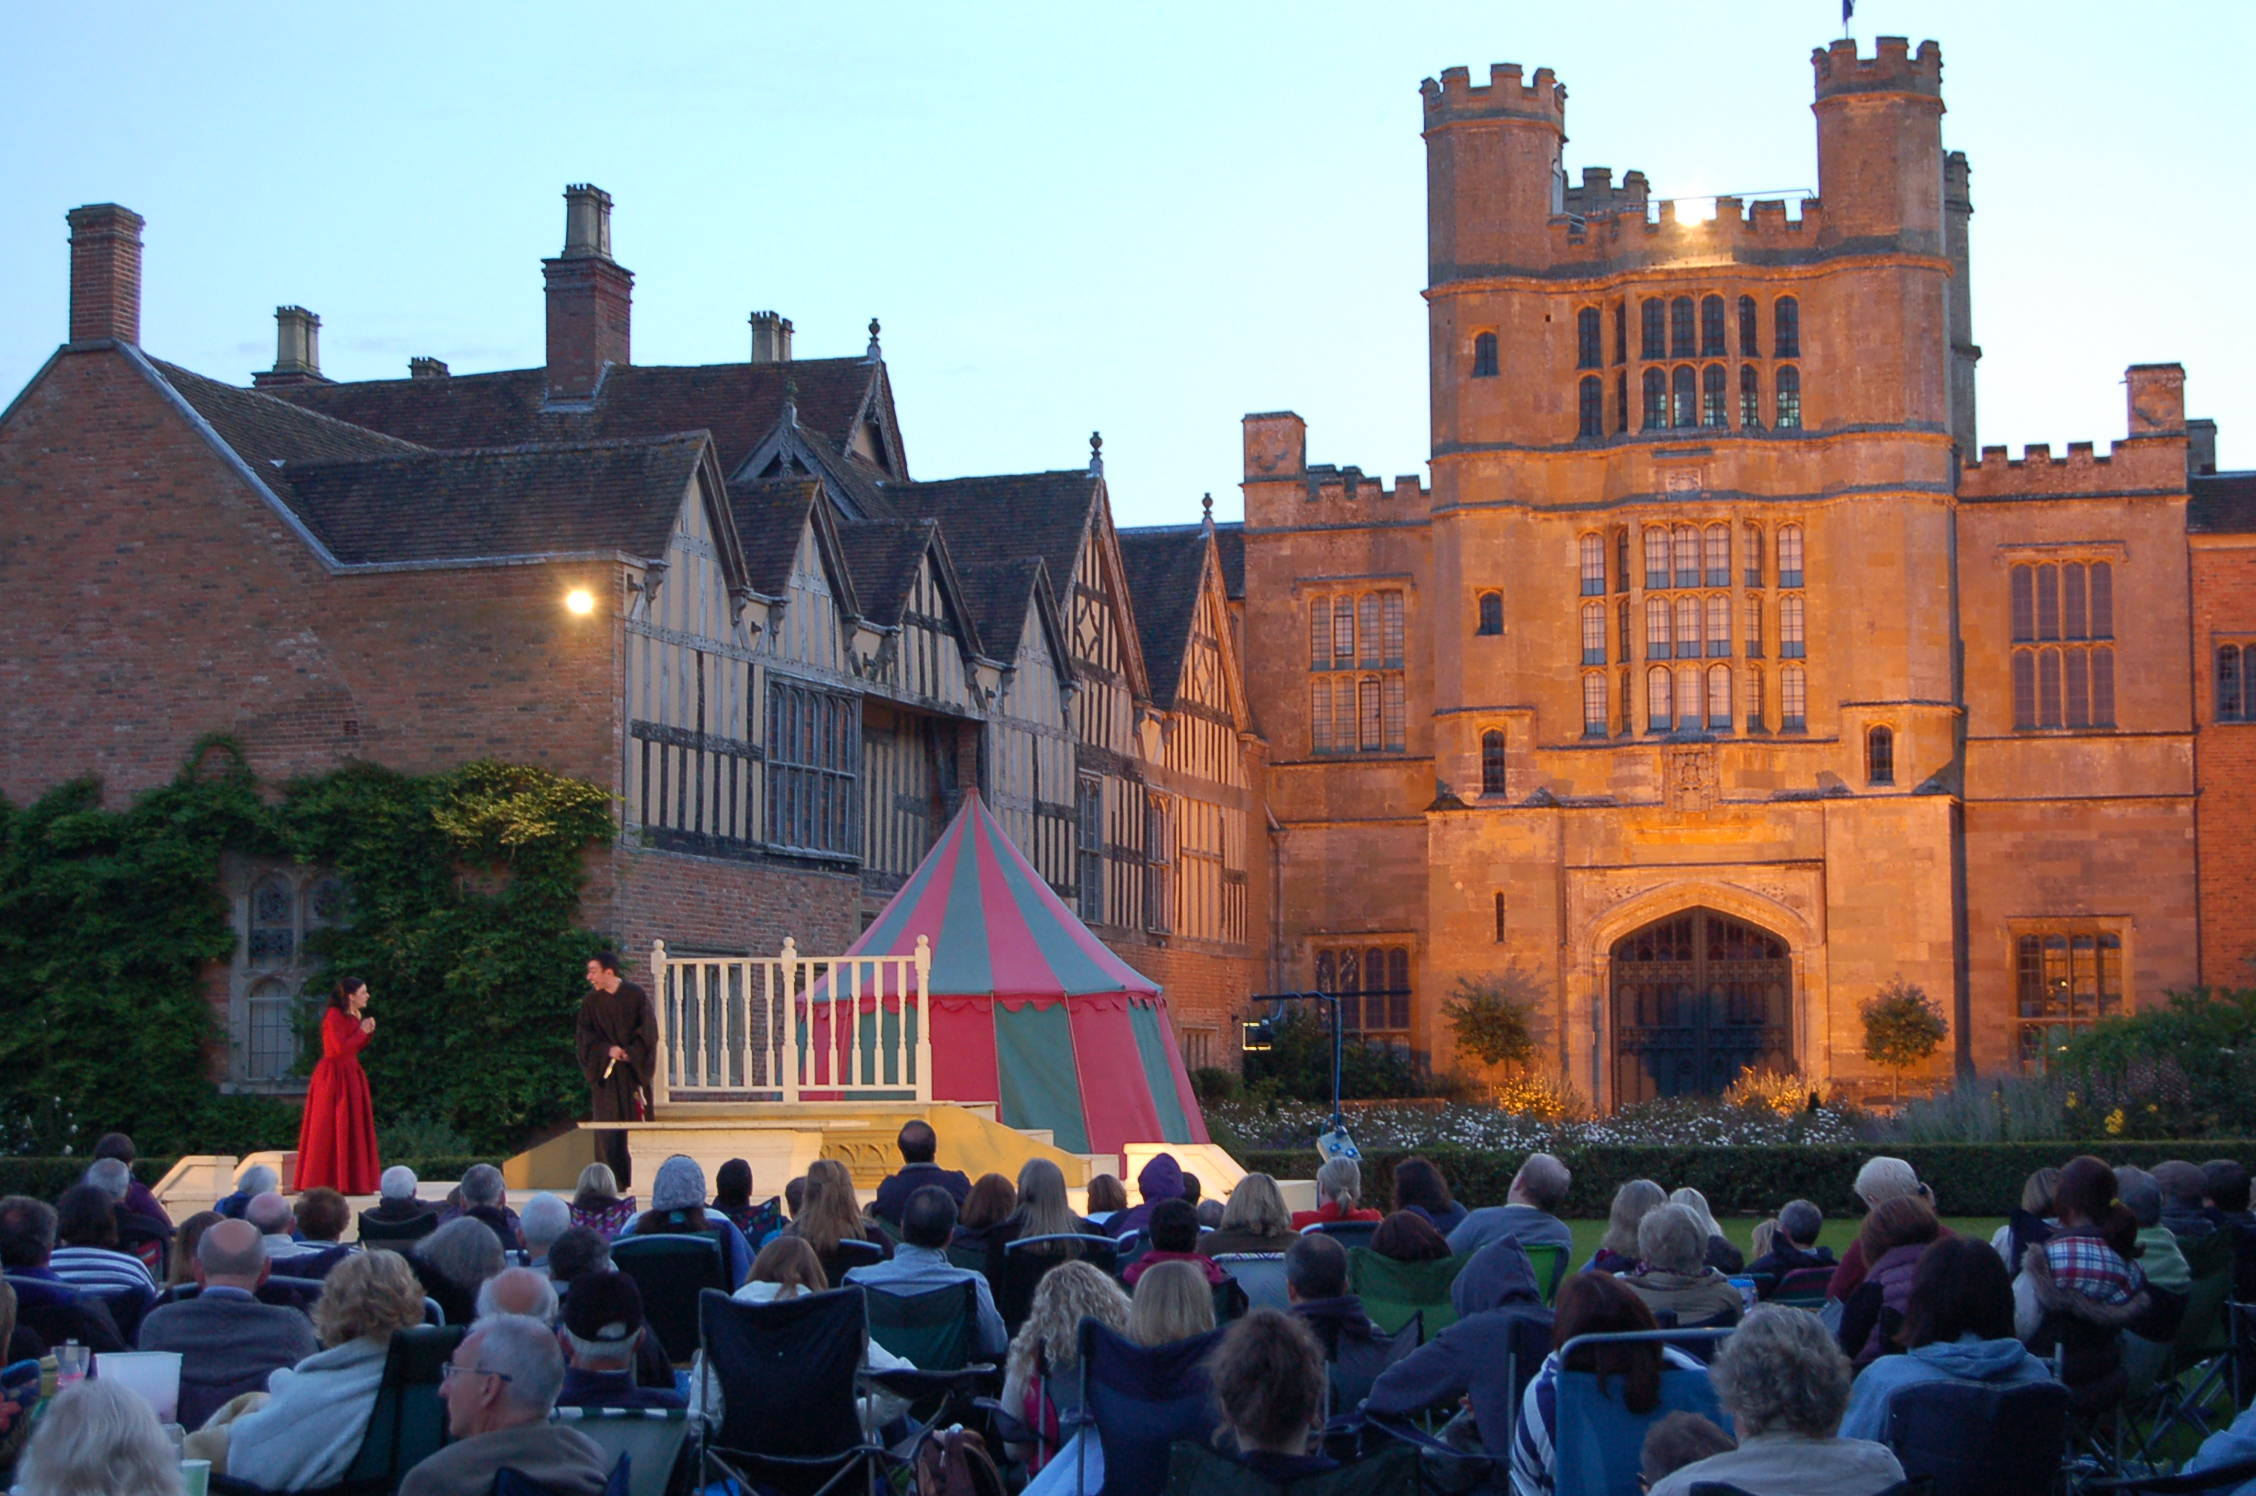 A production of Romeo and Juliet is coming to Coughton Court near Alcester. Photo courtesy of Claire Blackburn.